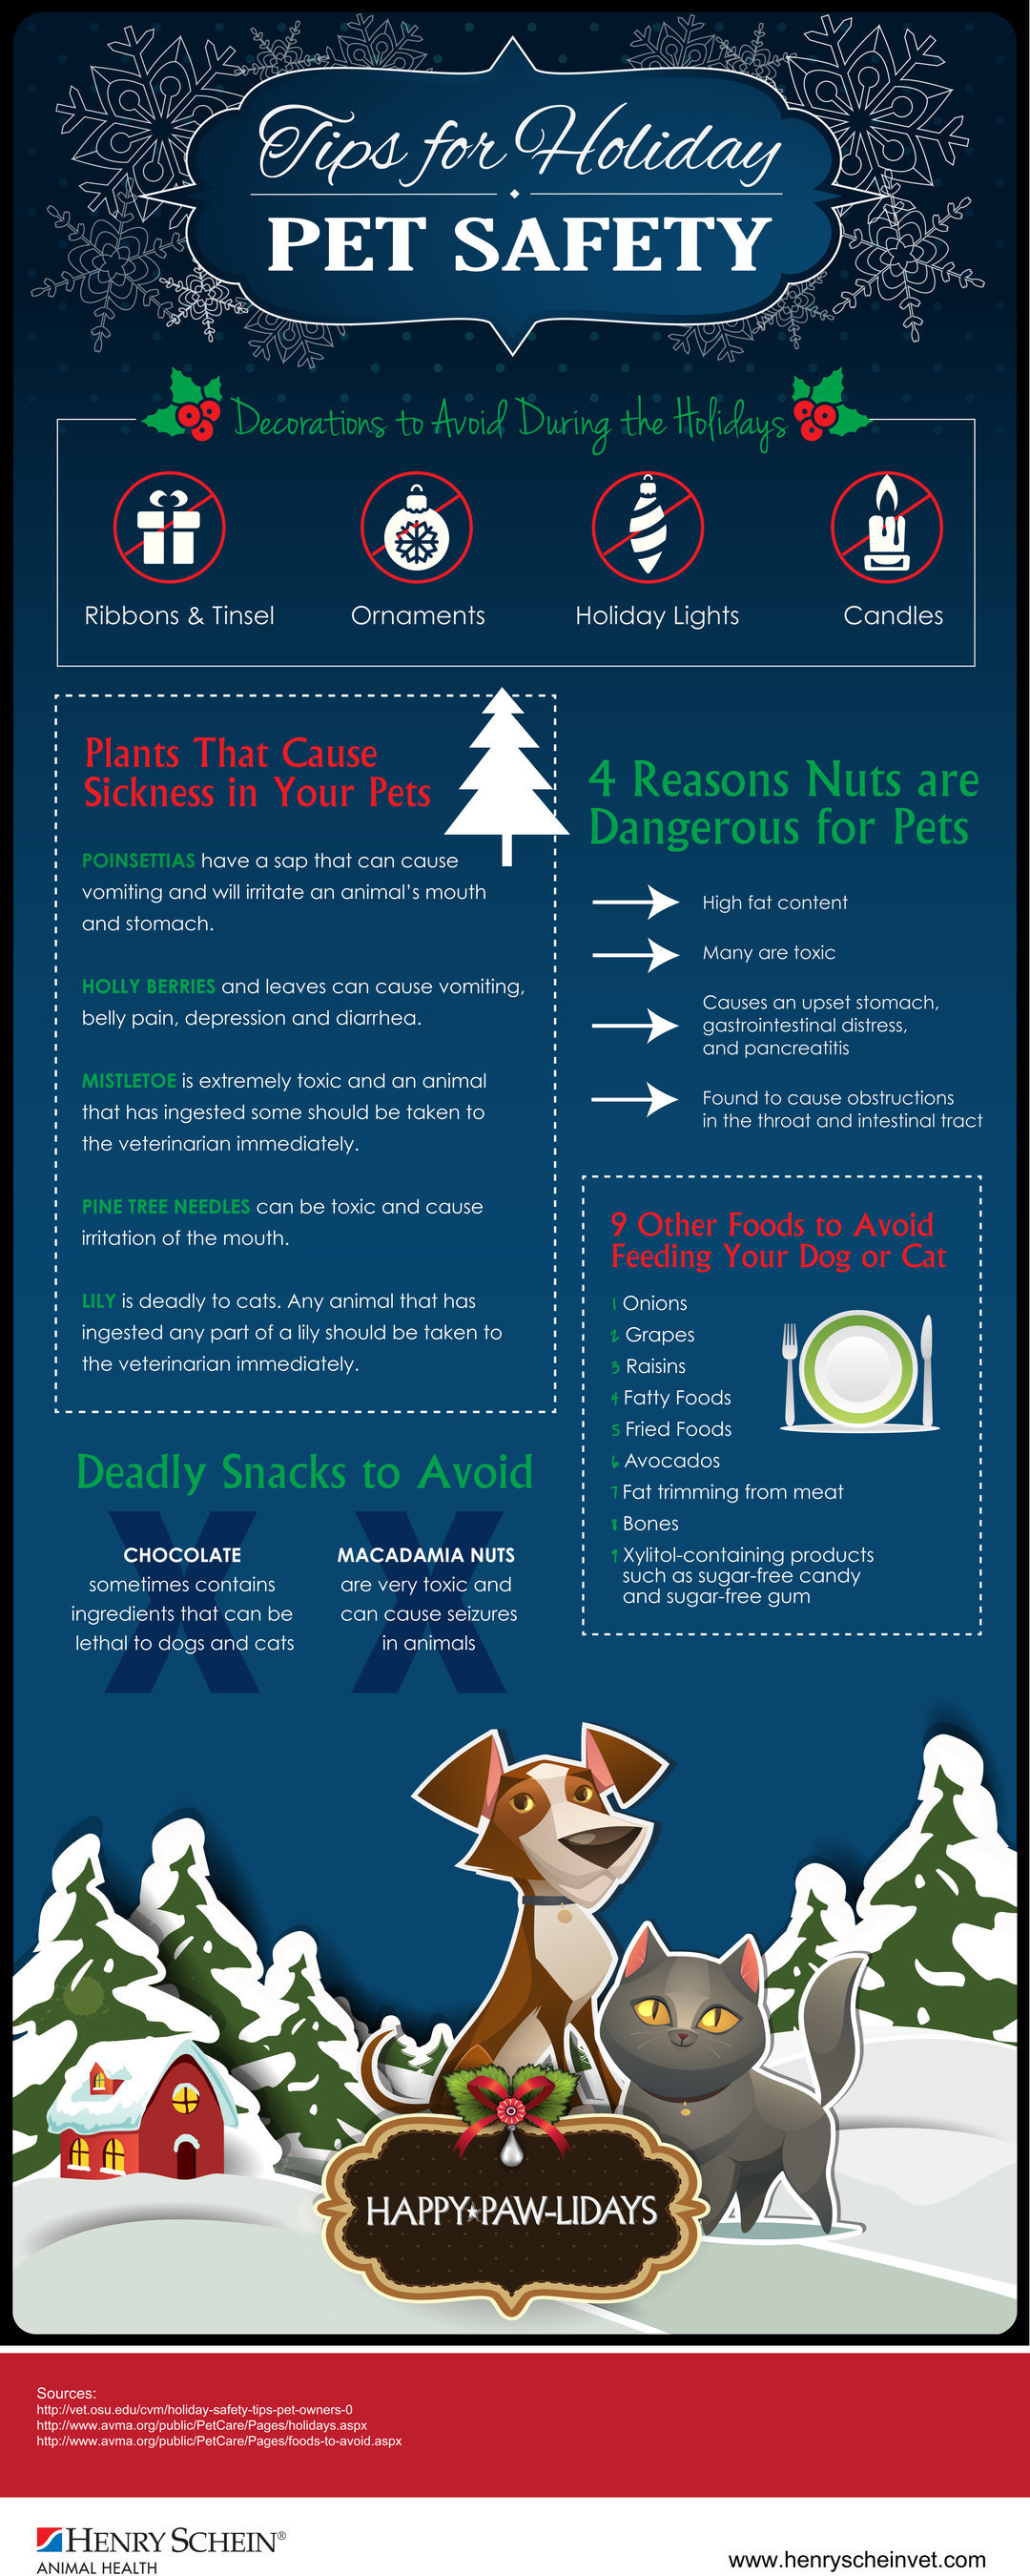 Henry Schein Scheins Tips For Holiday Pet Safety